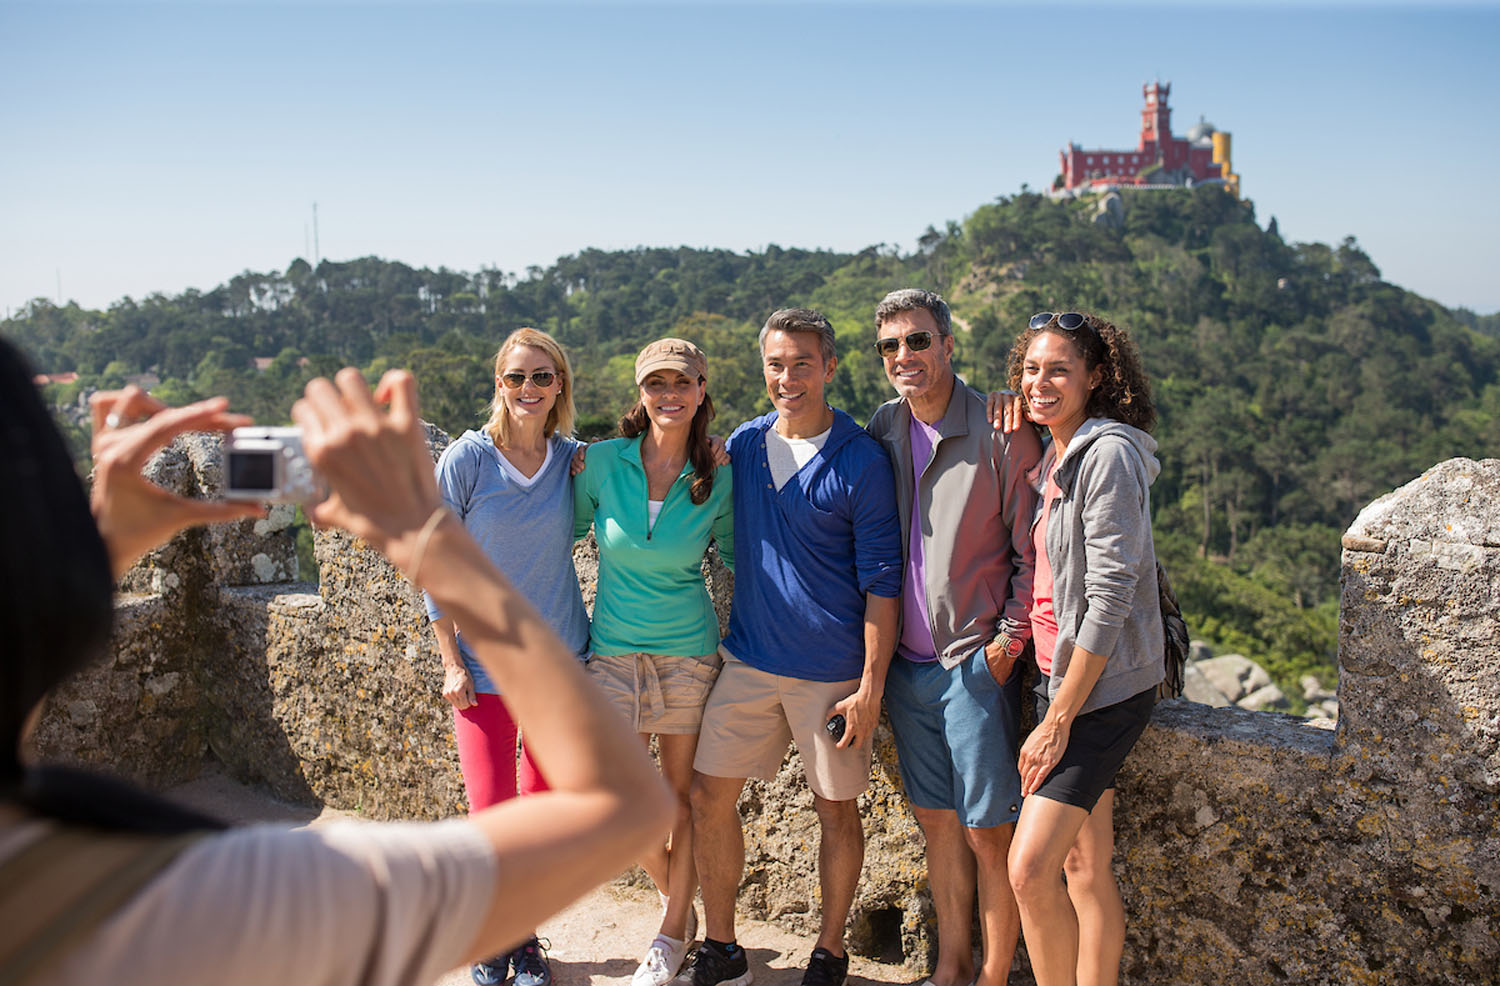 A New Europe Private Touring Option Is Now Available With Globus That Allows Groups Of Family